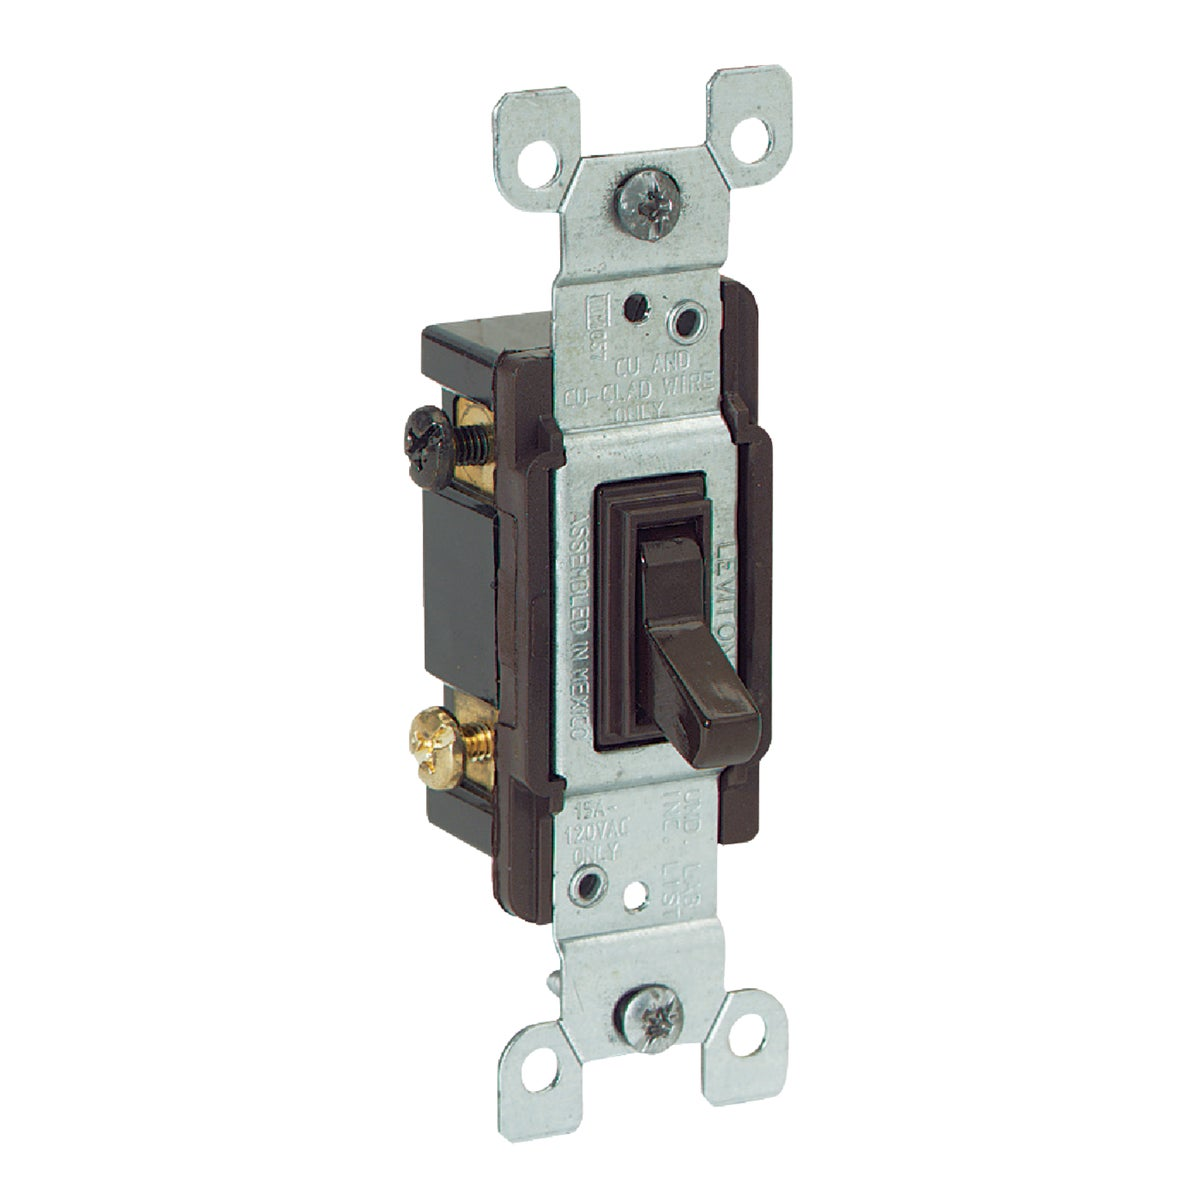 BRN 3-WAY SWITCH - 1453CP by Leviton Mfg Co